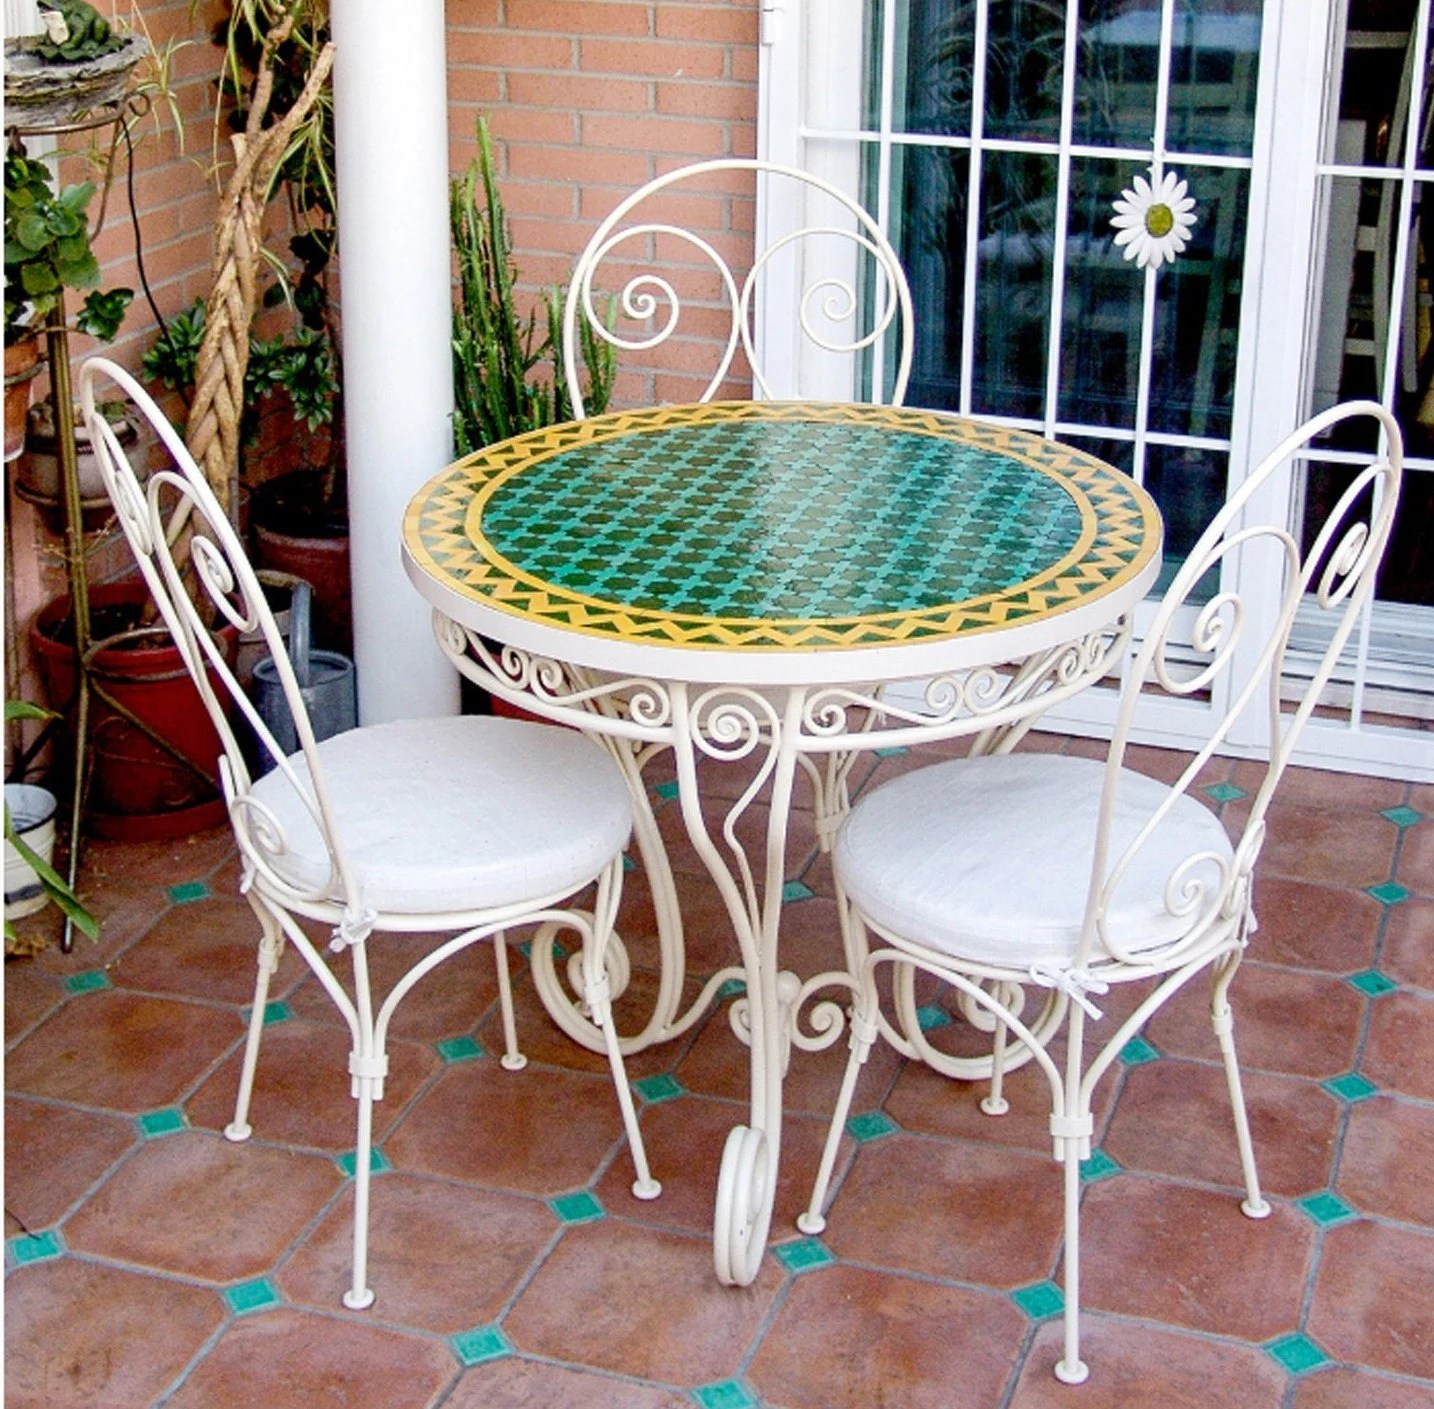 Outdoor Table And Chair Set Garden Table Chairs Wrought Iron Garden Set Mosaic Table Moroccan 3 Chairs Wrought Iron Outdoor Quality